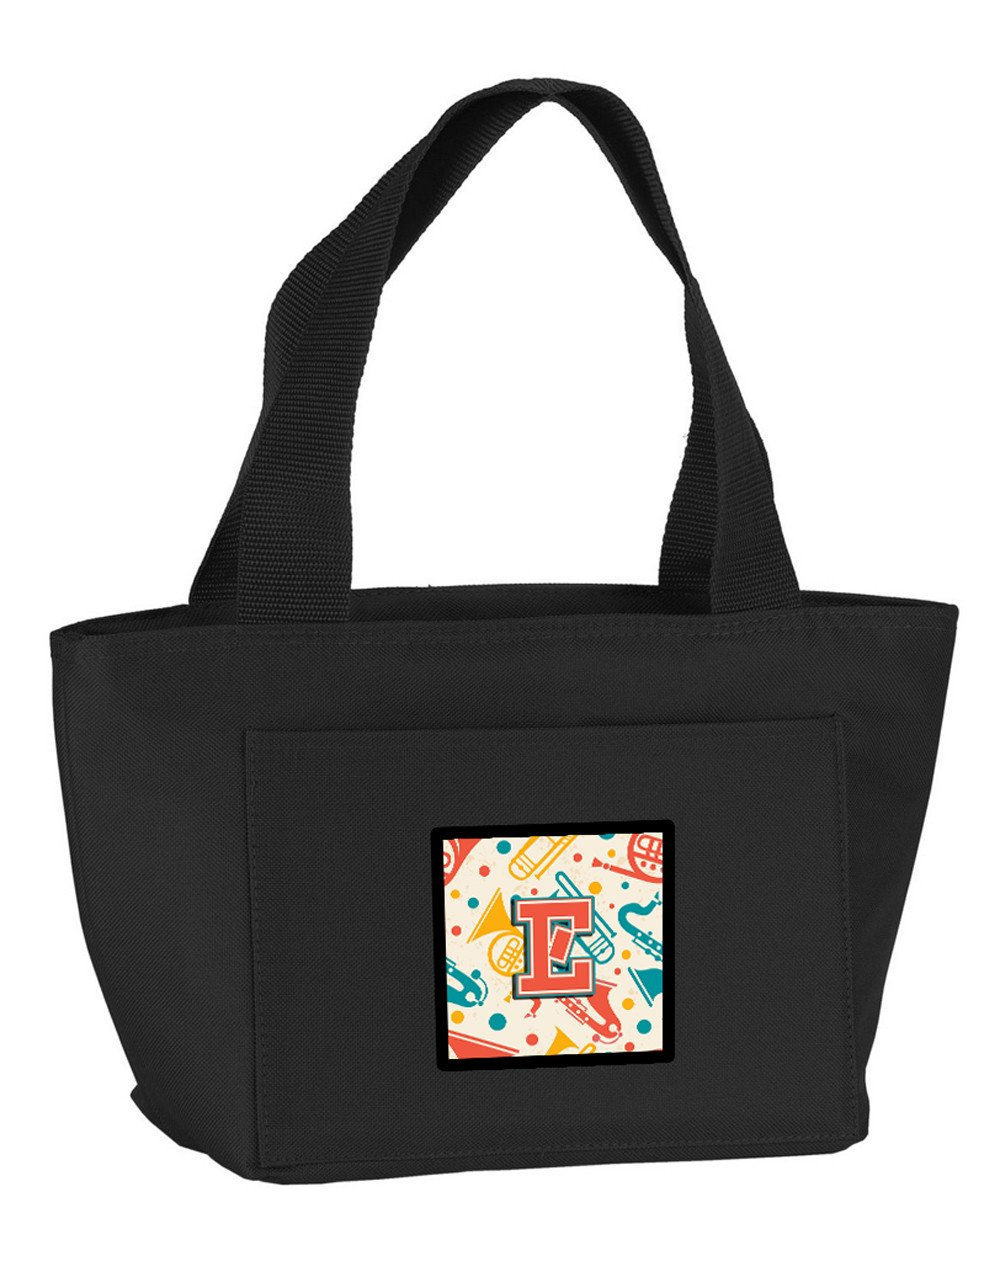 Letter E Retro Teal Orange Musical Instruments Initial Lunch Bag CJ2001-EBK-8808 by Caroline's Treasures